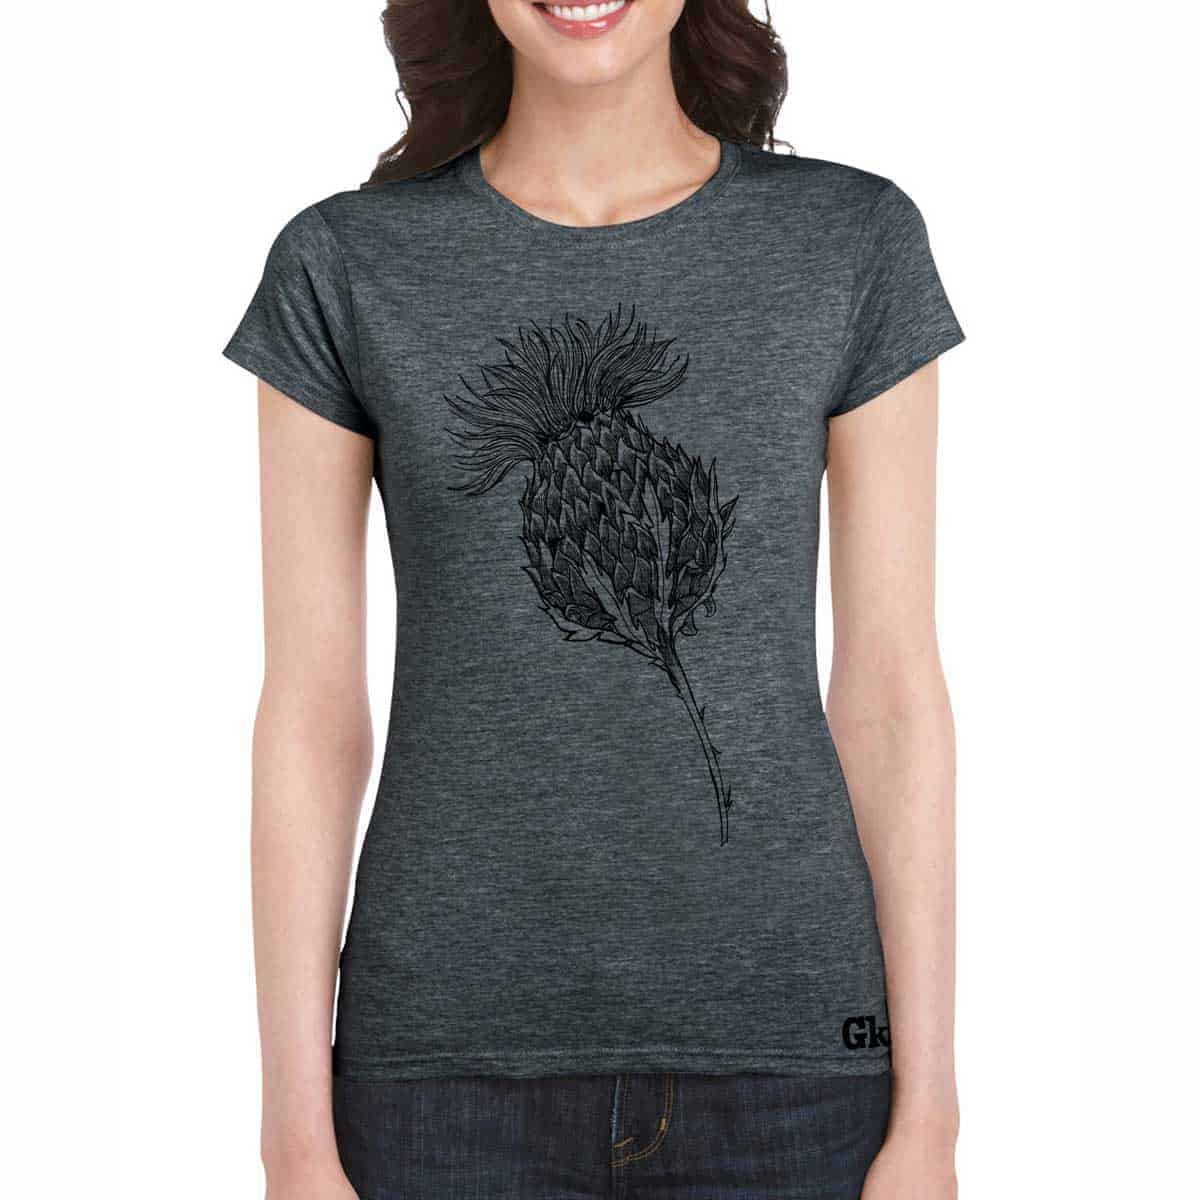 Women's Scottish Thistle t-shirt in charcoal by Gillian Kyle